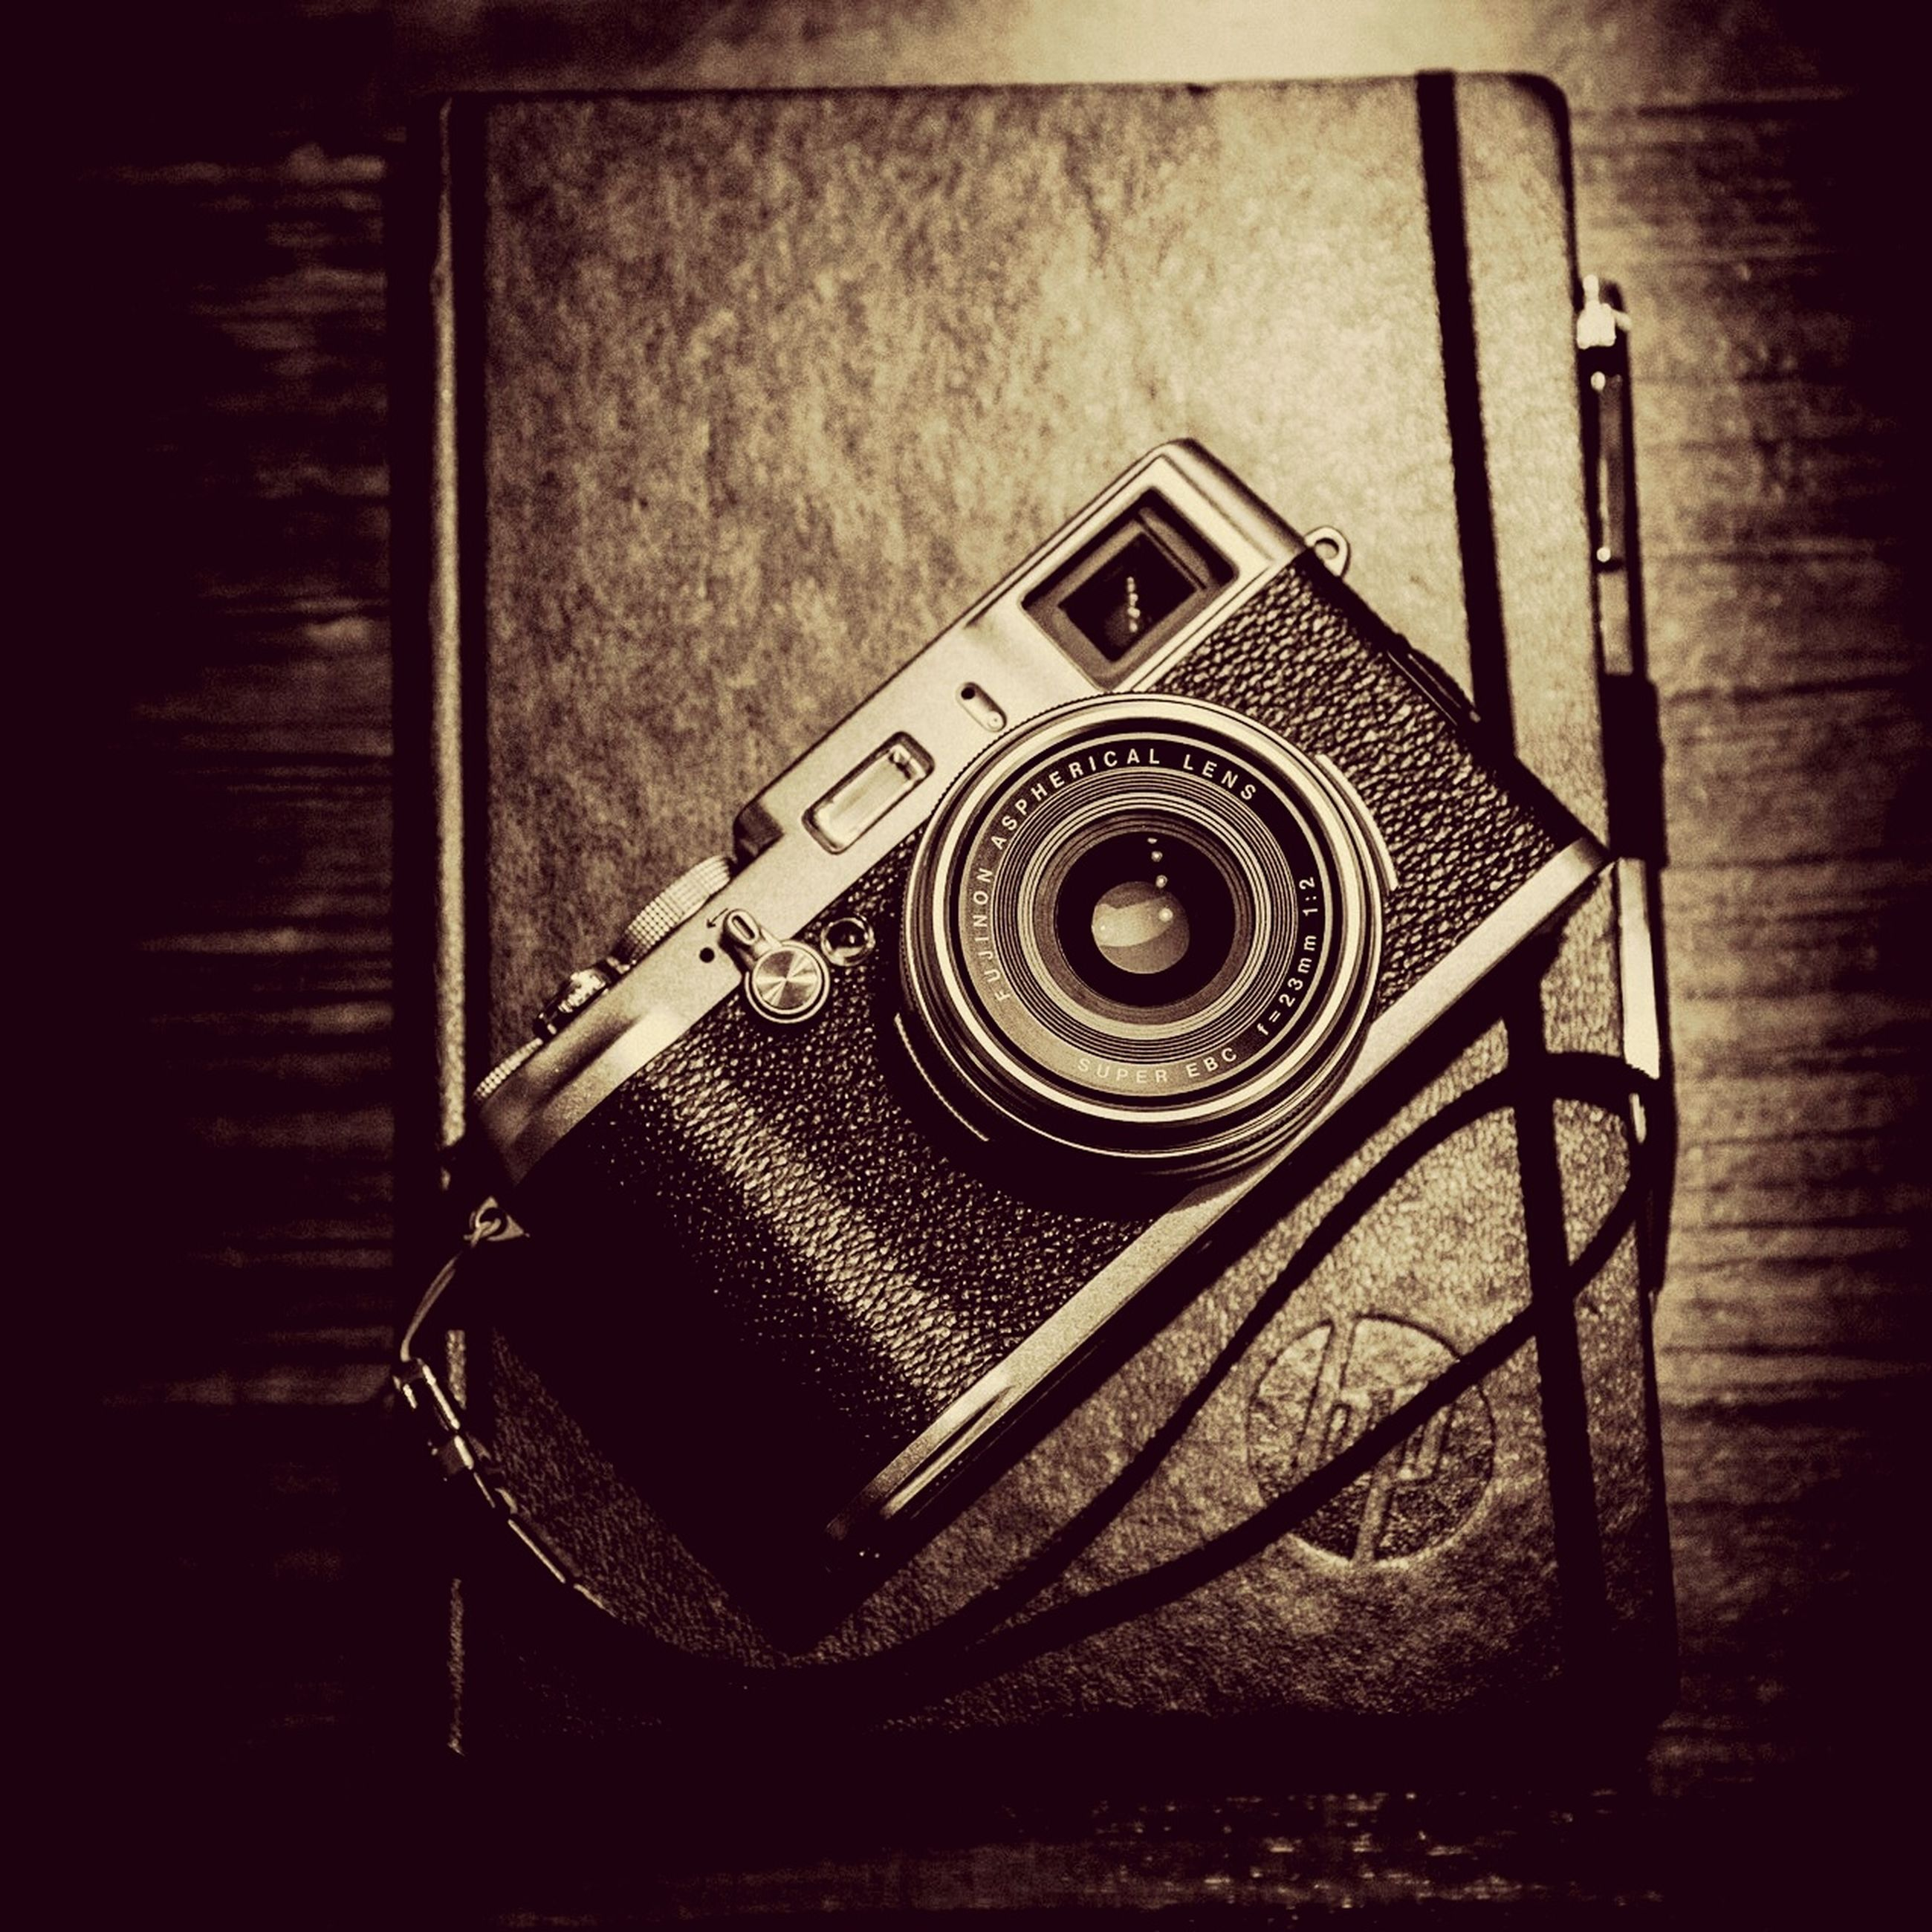 indoors, still life, retro styled, old-fashioned, close-up, table, antique, technology, old, single object, wood - material, metal, no people, high angle view, wall - building feature, auto post production filter, vintage, telephone, man made object, black color